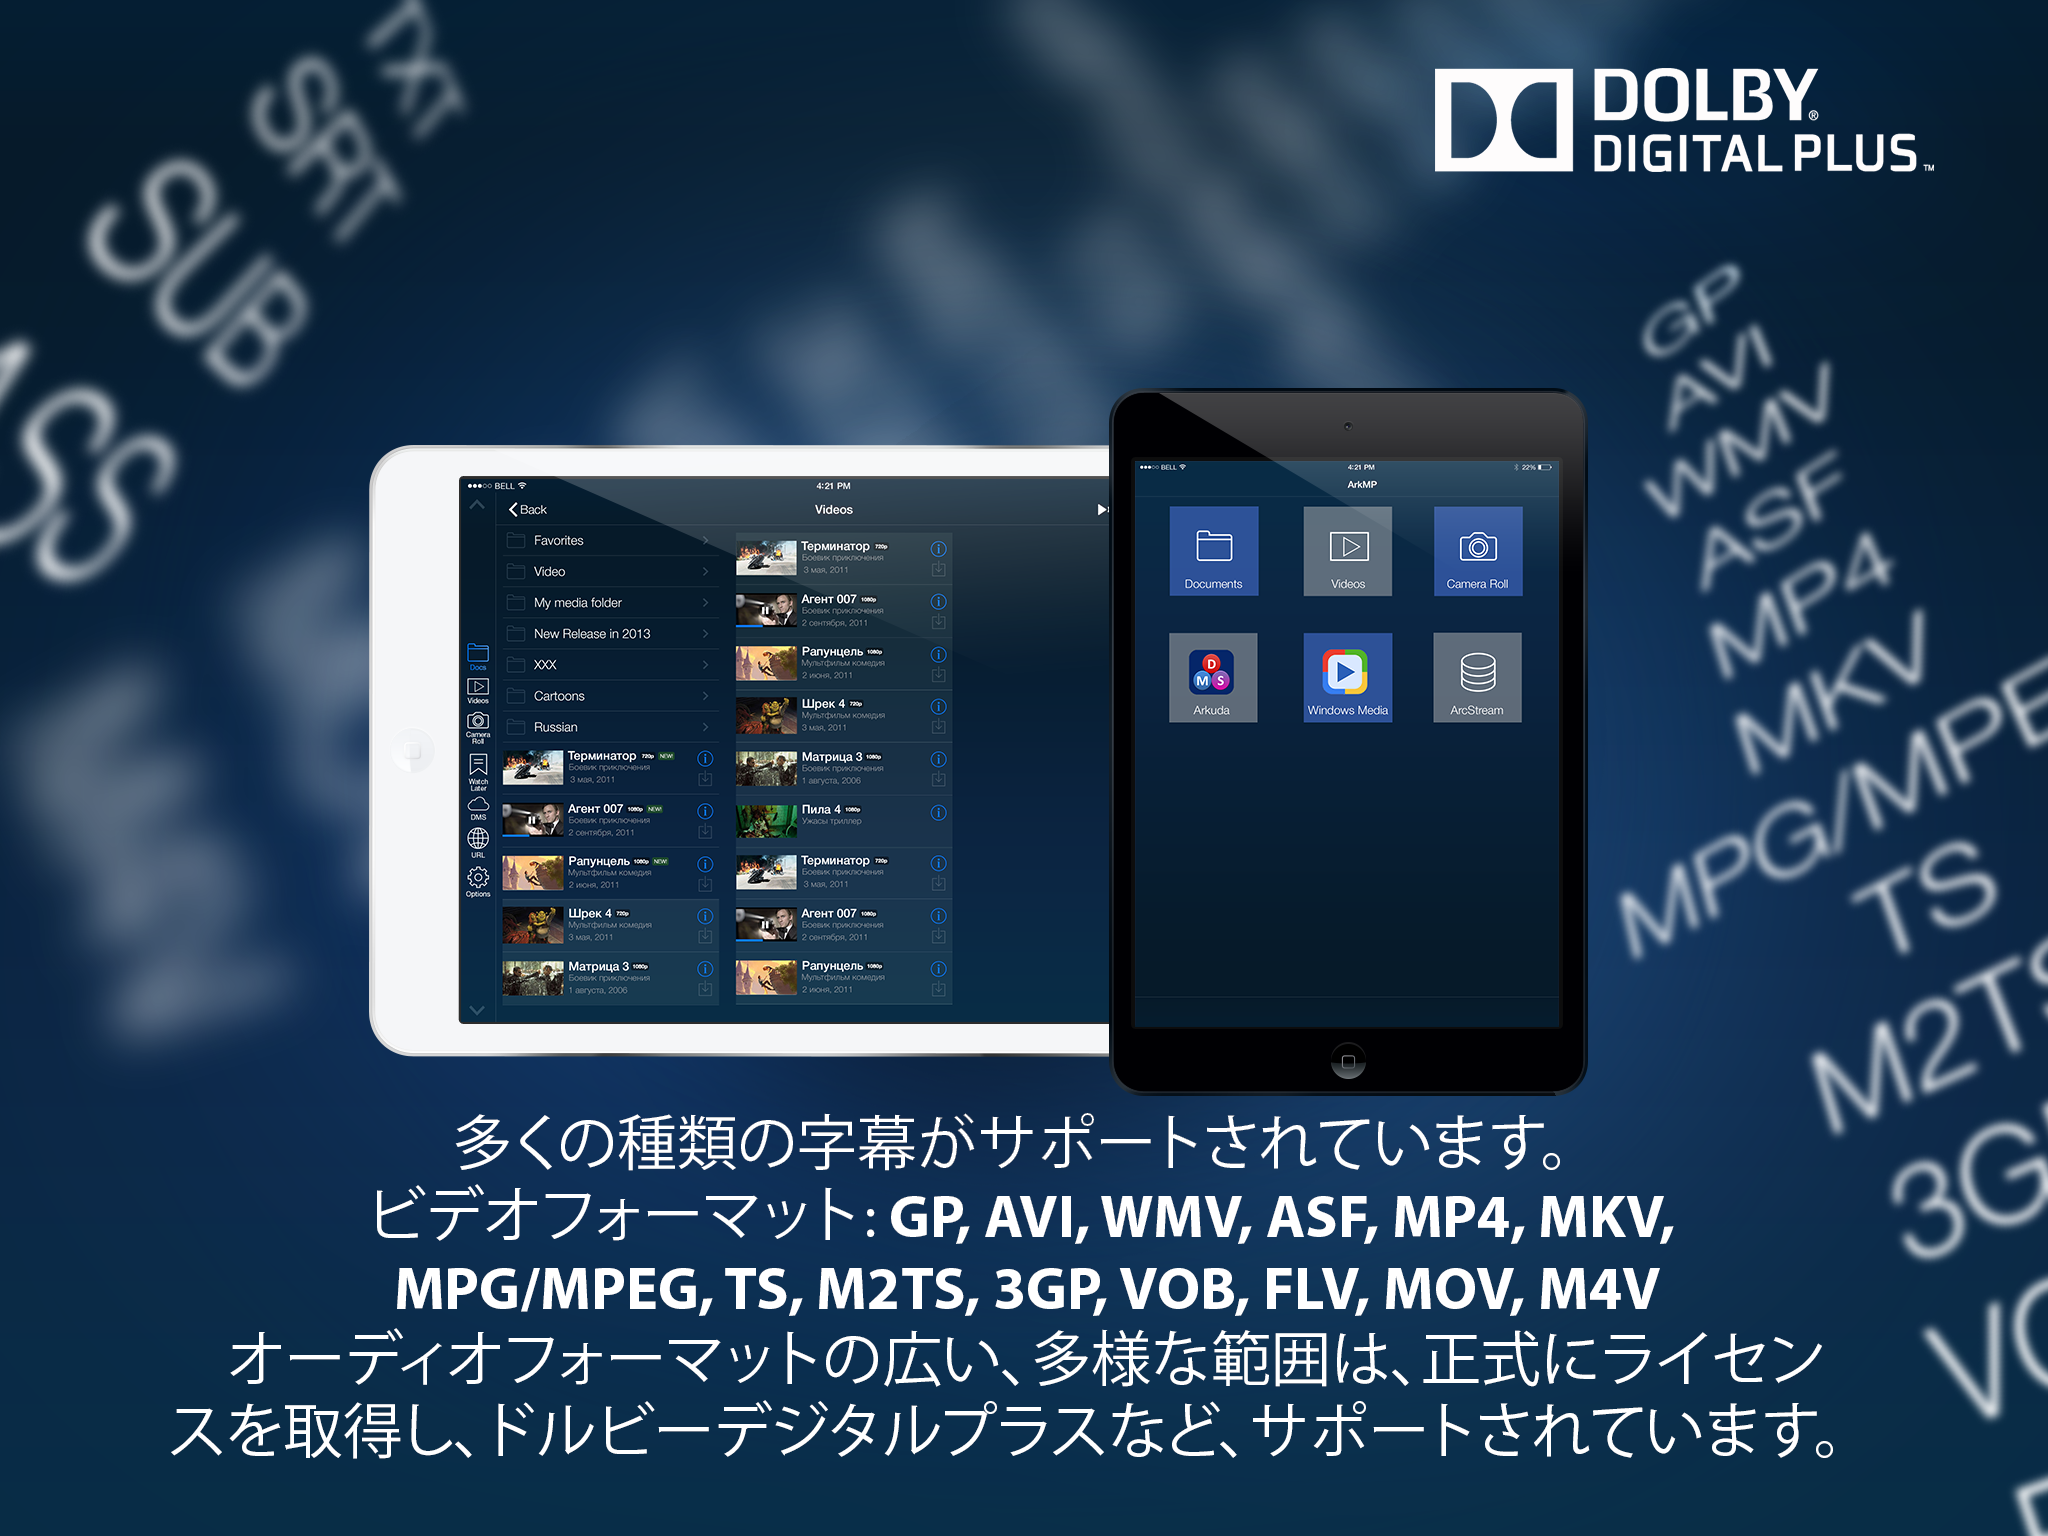 Check out a upnp and dlna video player MCPlayer's HD